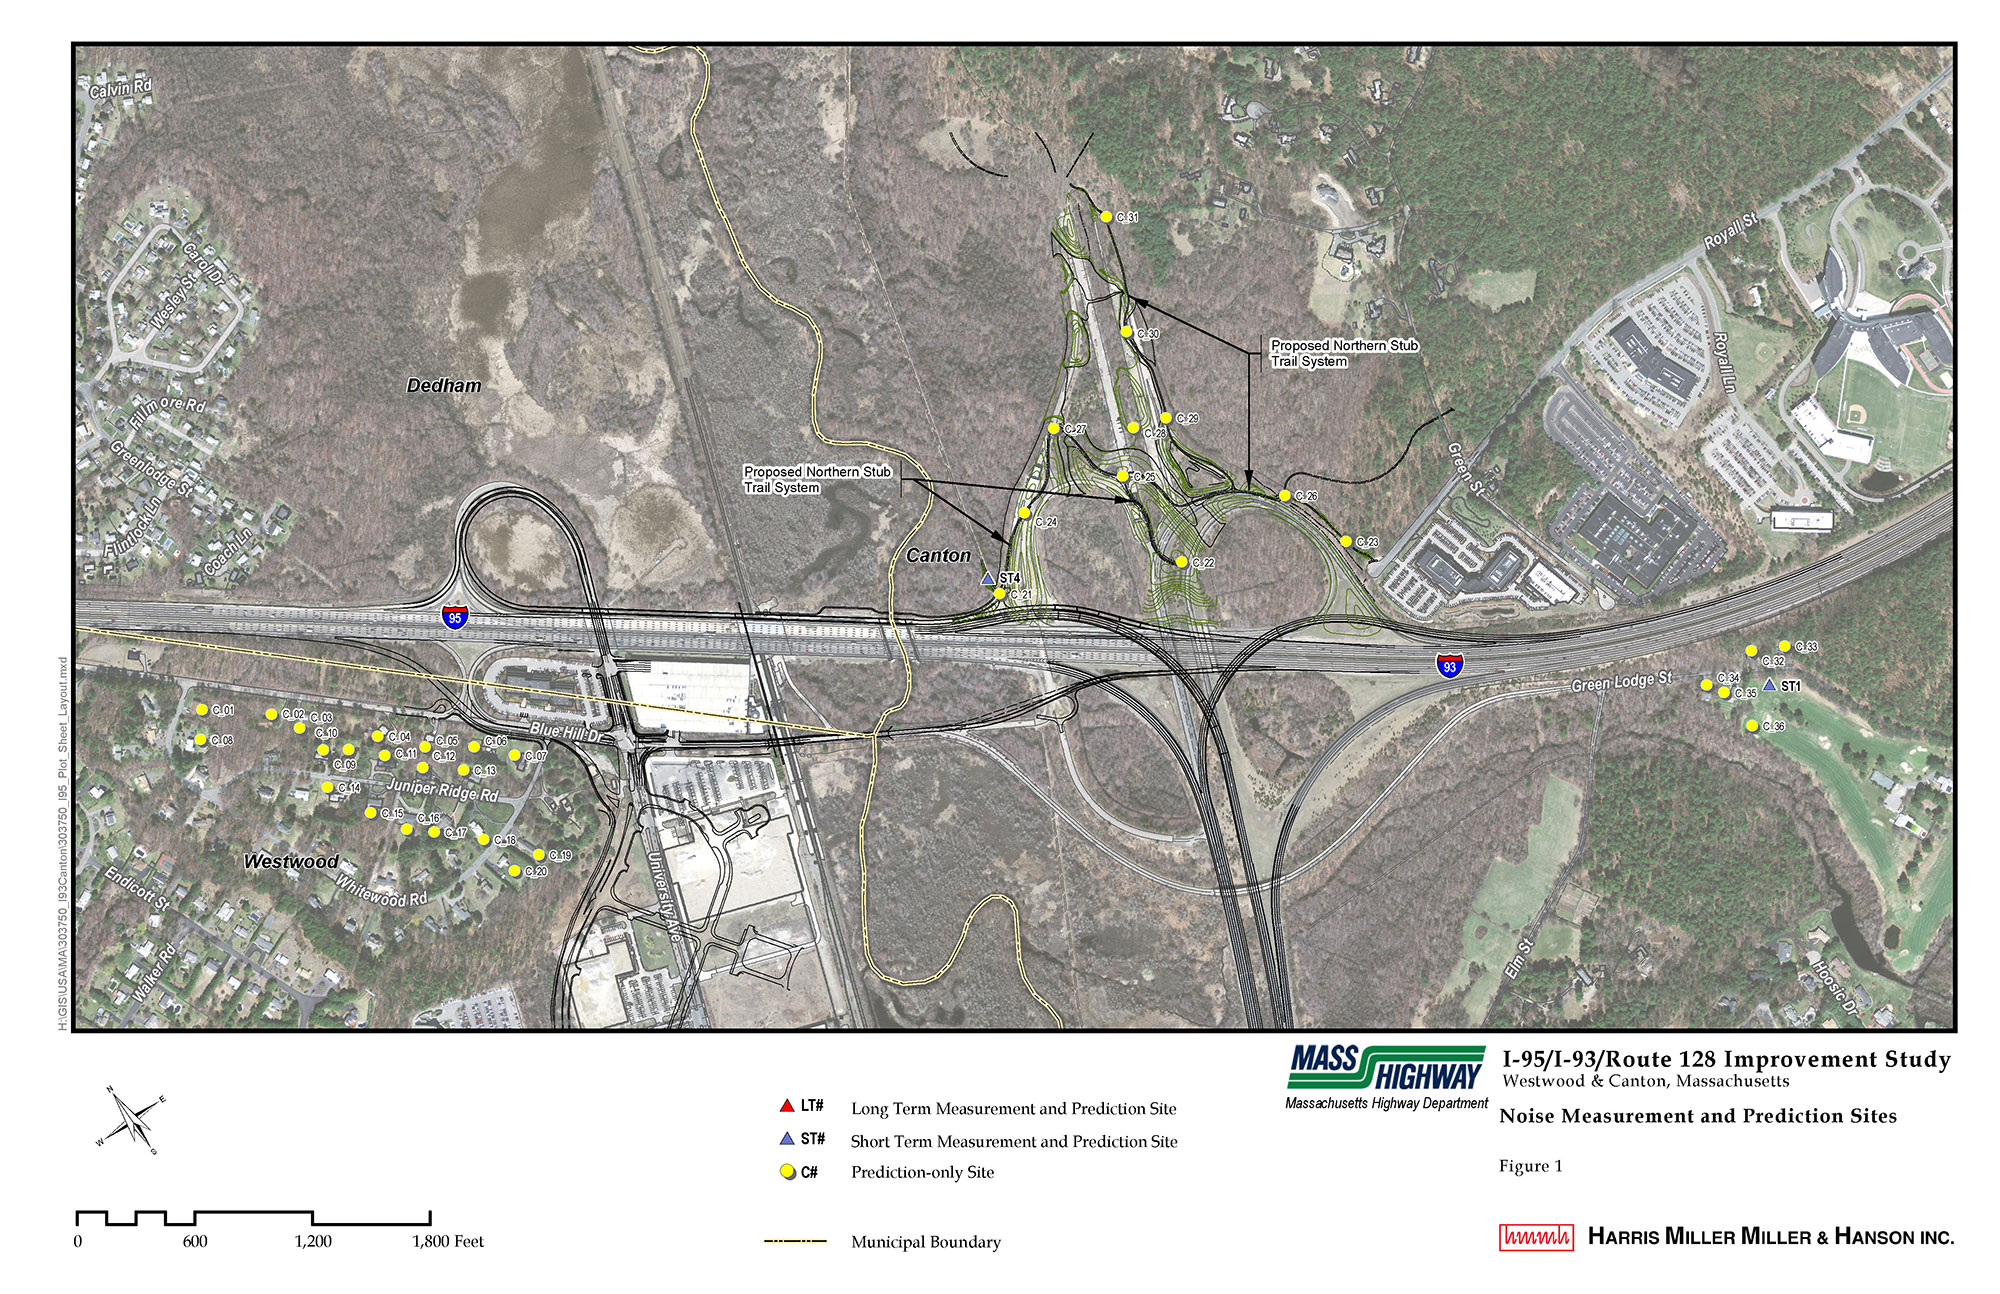 MassDOT I-93 and I-95 Improvements Study Noise Analysis and Abatement Evaluation